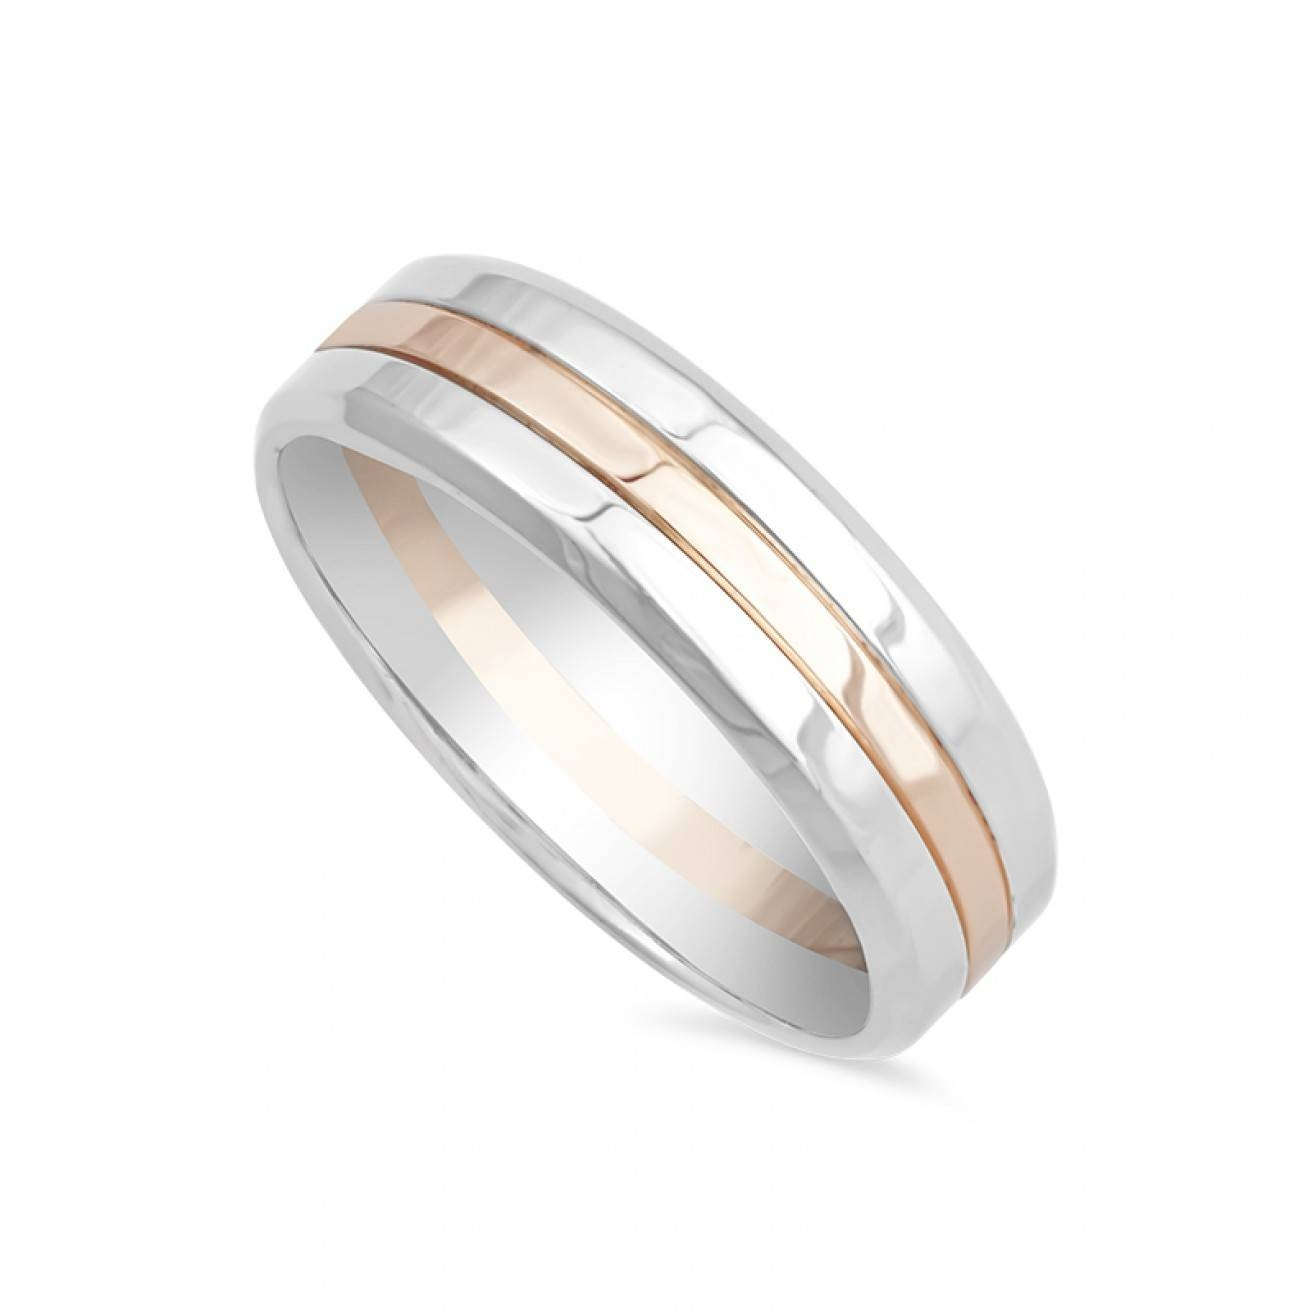 Buy Men's Wedding Rings Online – Fraser Hart Regarding Latest Rose Gold Platinum Wedding Bands (View 5 of 15)